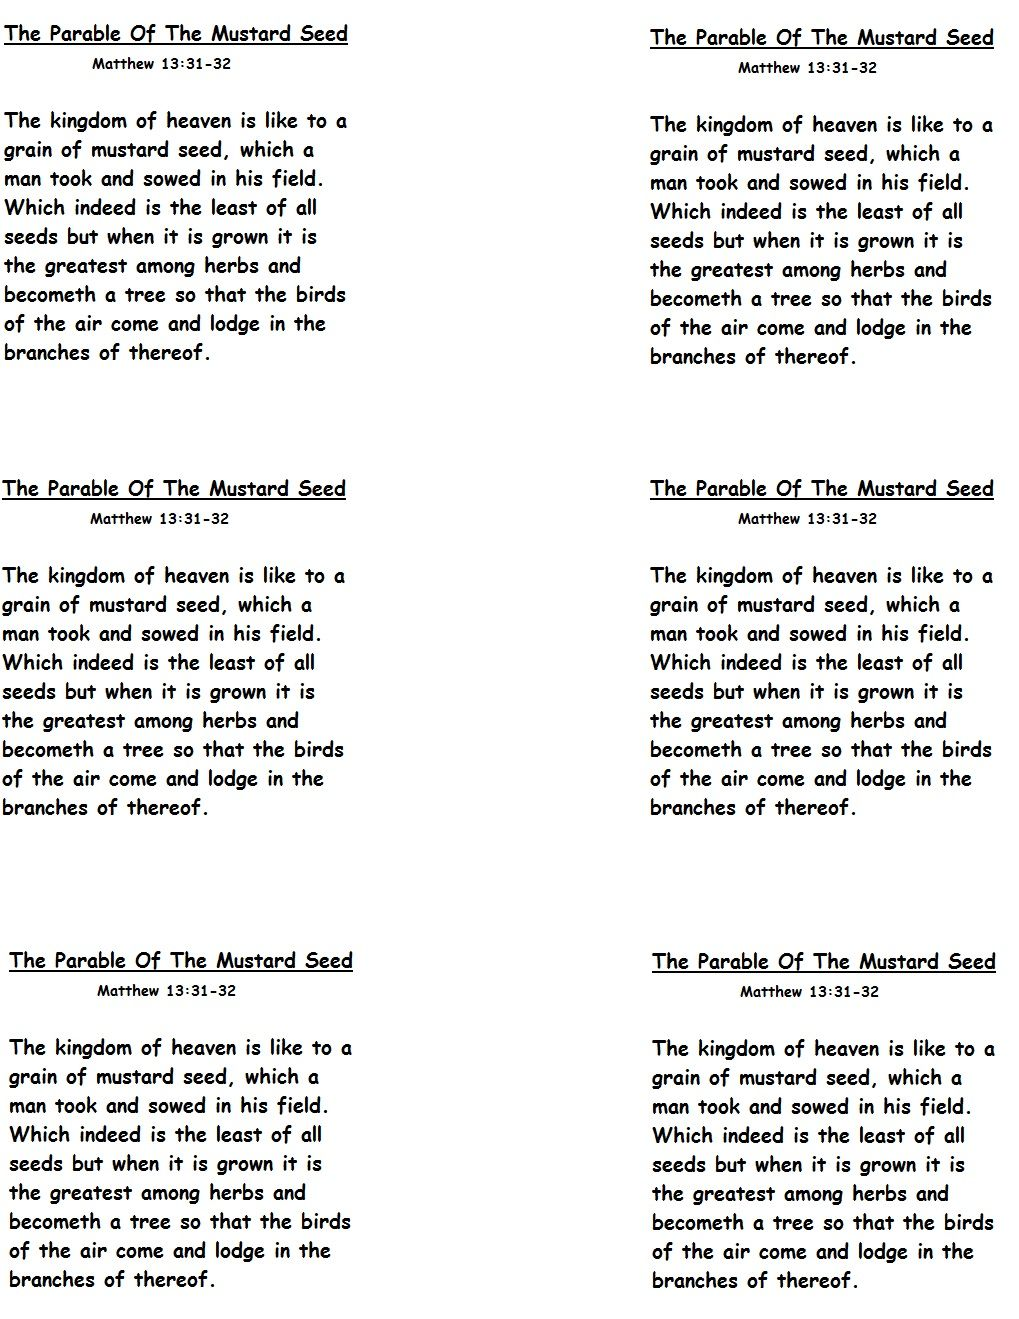 The Parable Of Mustard Seed Template 1019x1319 Pixels